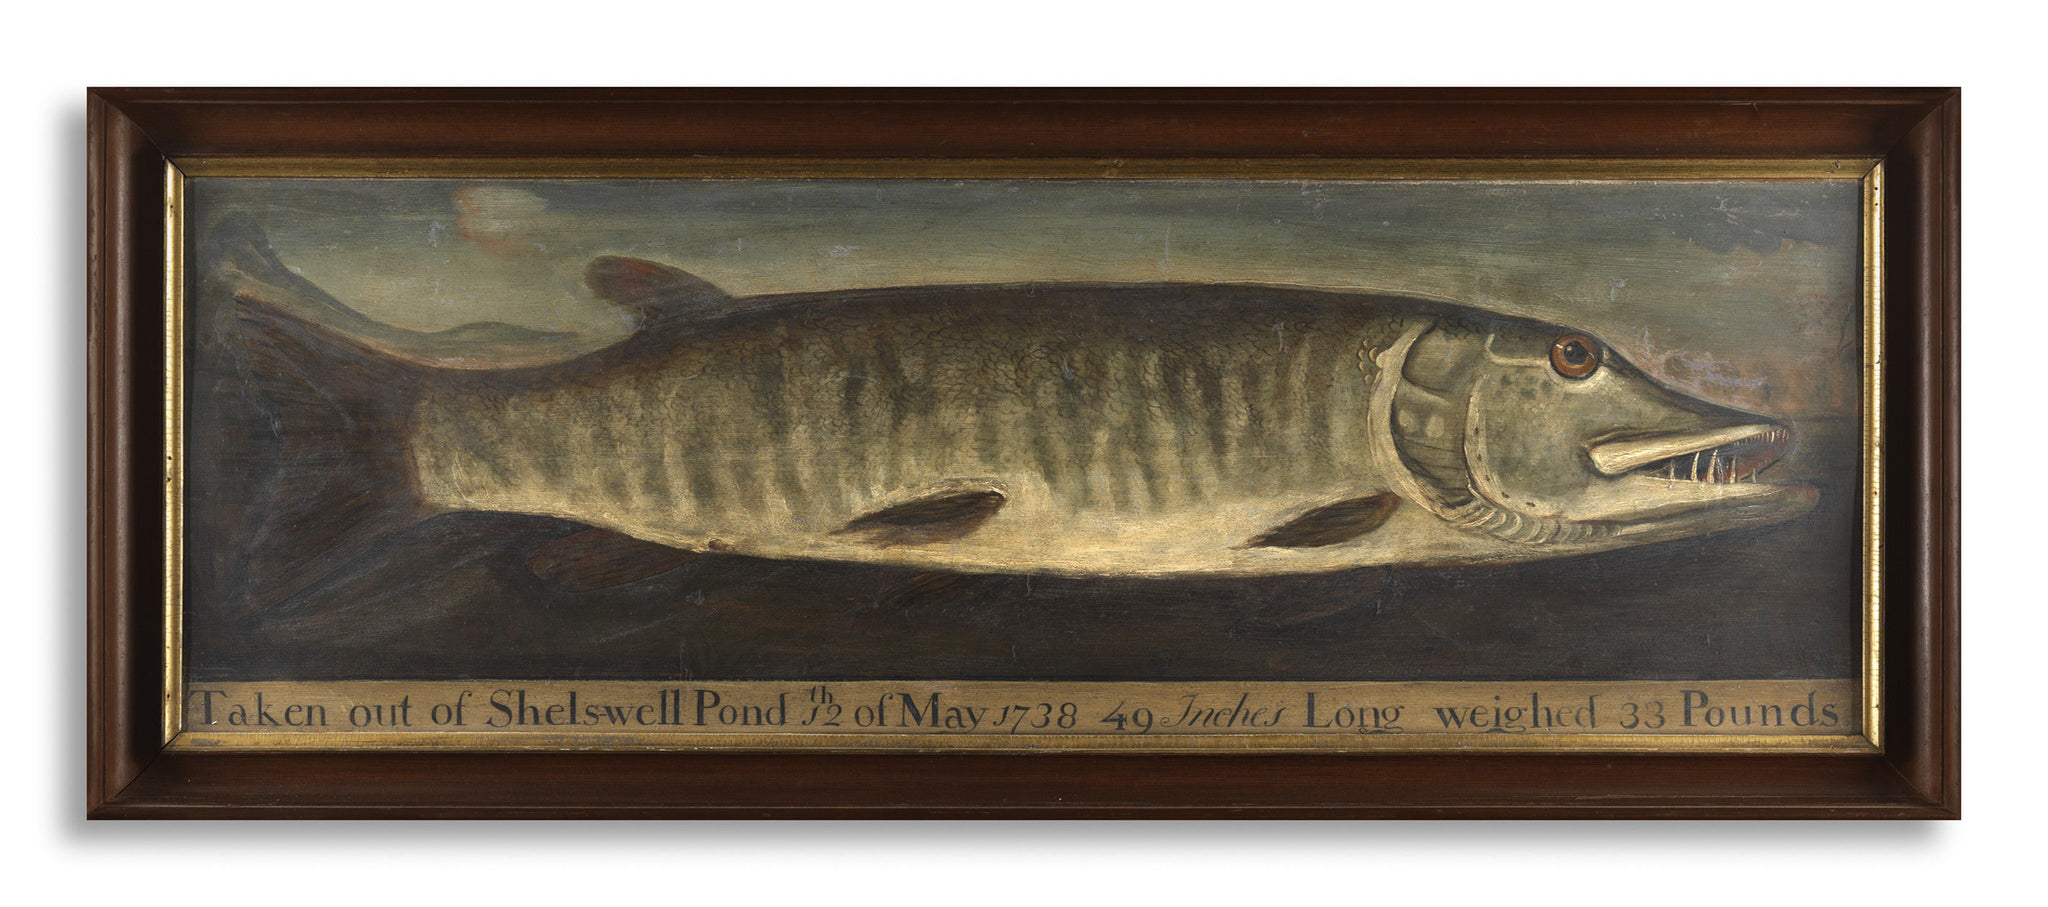 Exceptional Naïve Painting of a Trophy Pike